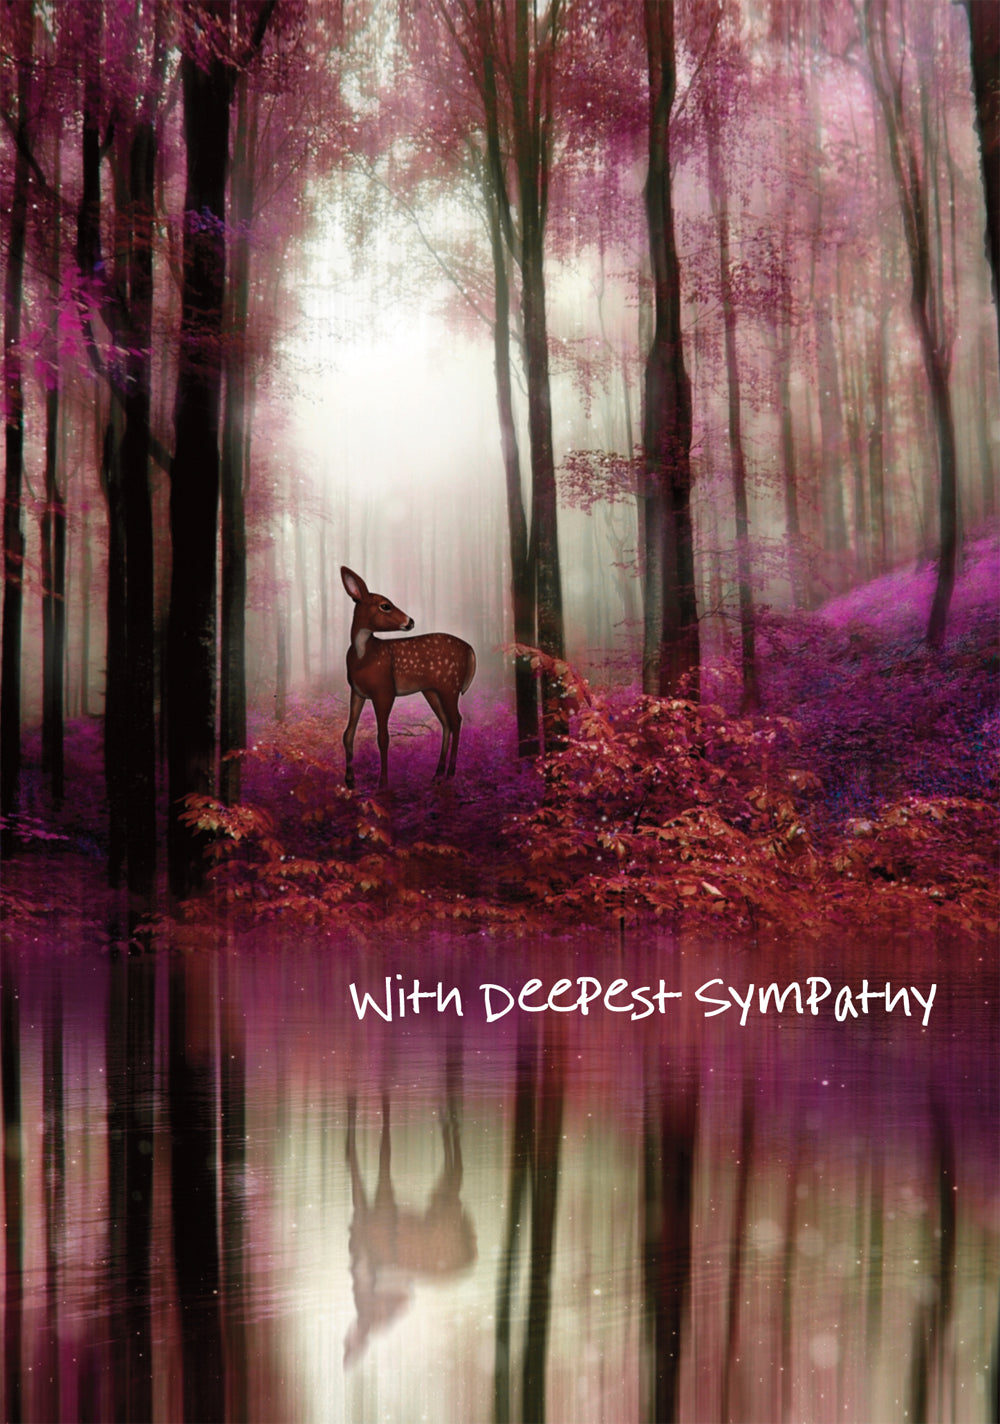 With Deepest Sympathy - DeerWith Deepest Sympathy - Deer